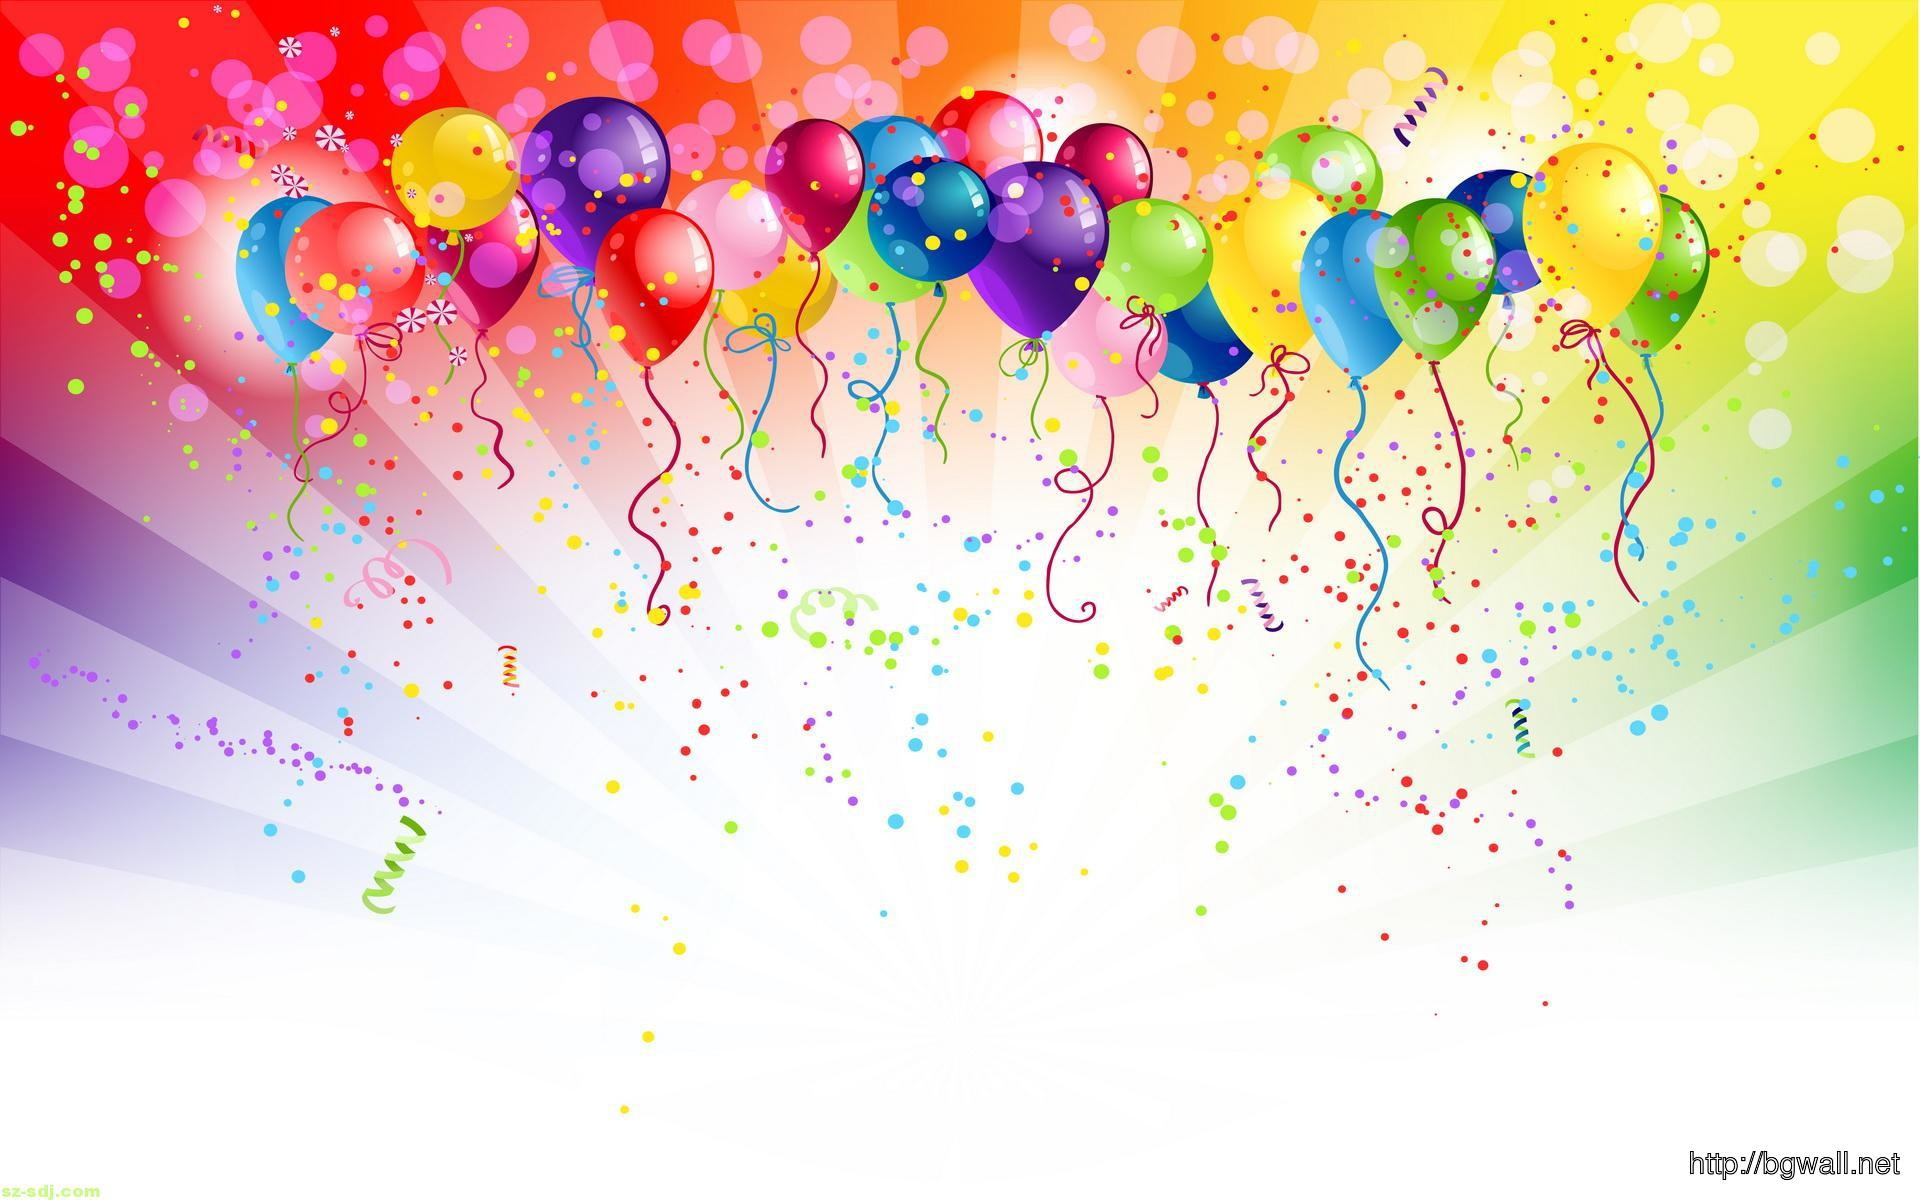 I Want To Download Cute Wallpapers Birthday Party Wallpaper 52 Images